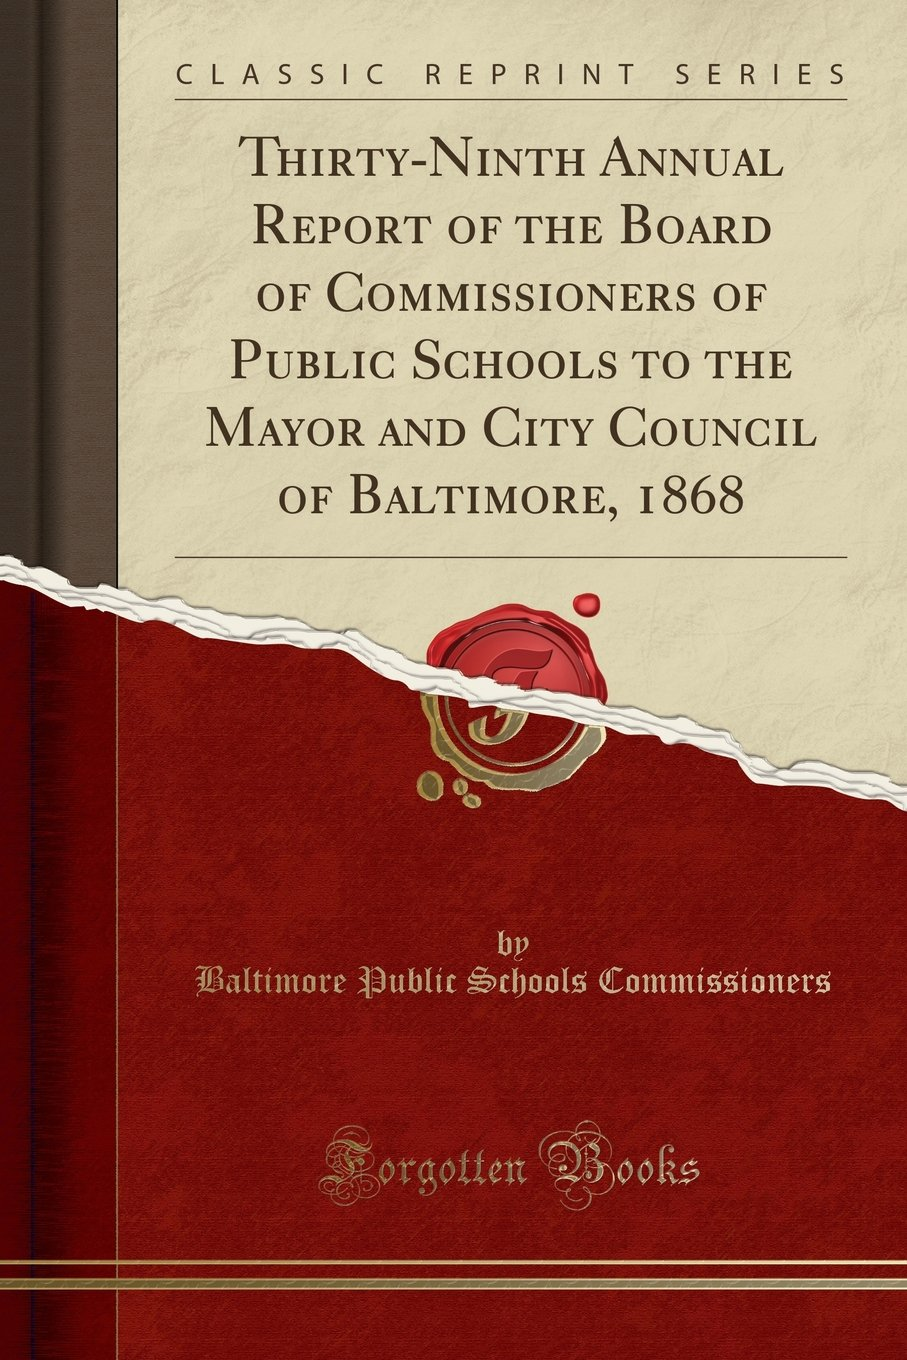 Thirty-Ninth Annual Report of the Board of Commissioners of Public Schools to the Mayor and City Council of Baltimore, 1868 (Classic Reprint) PDF